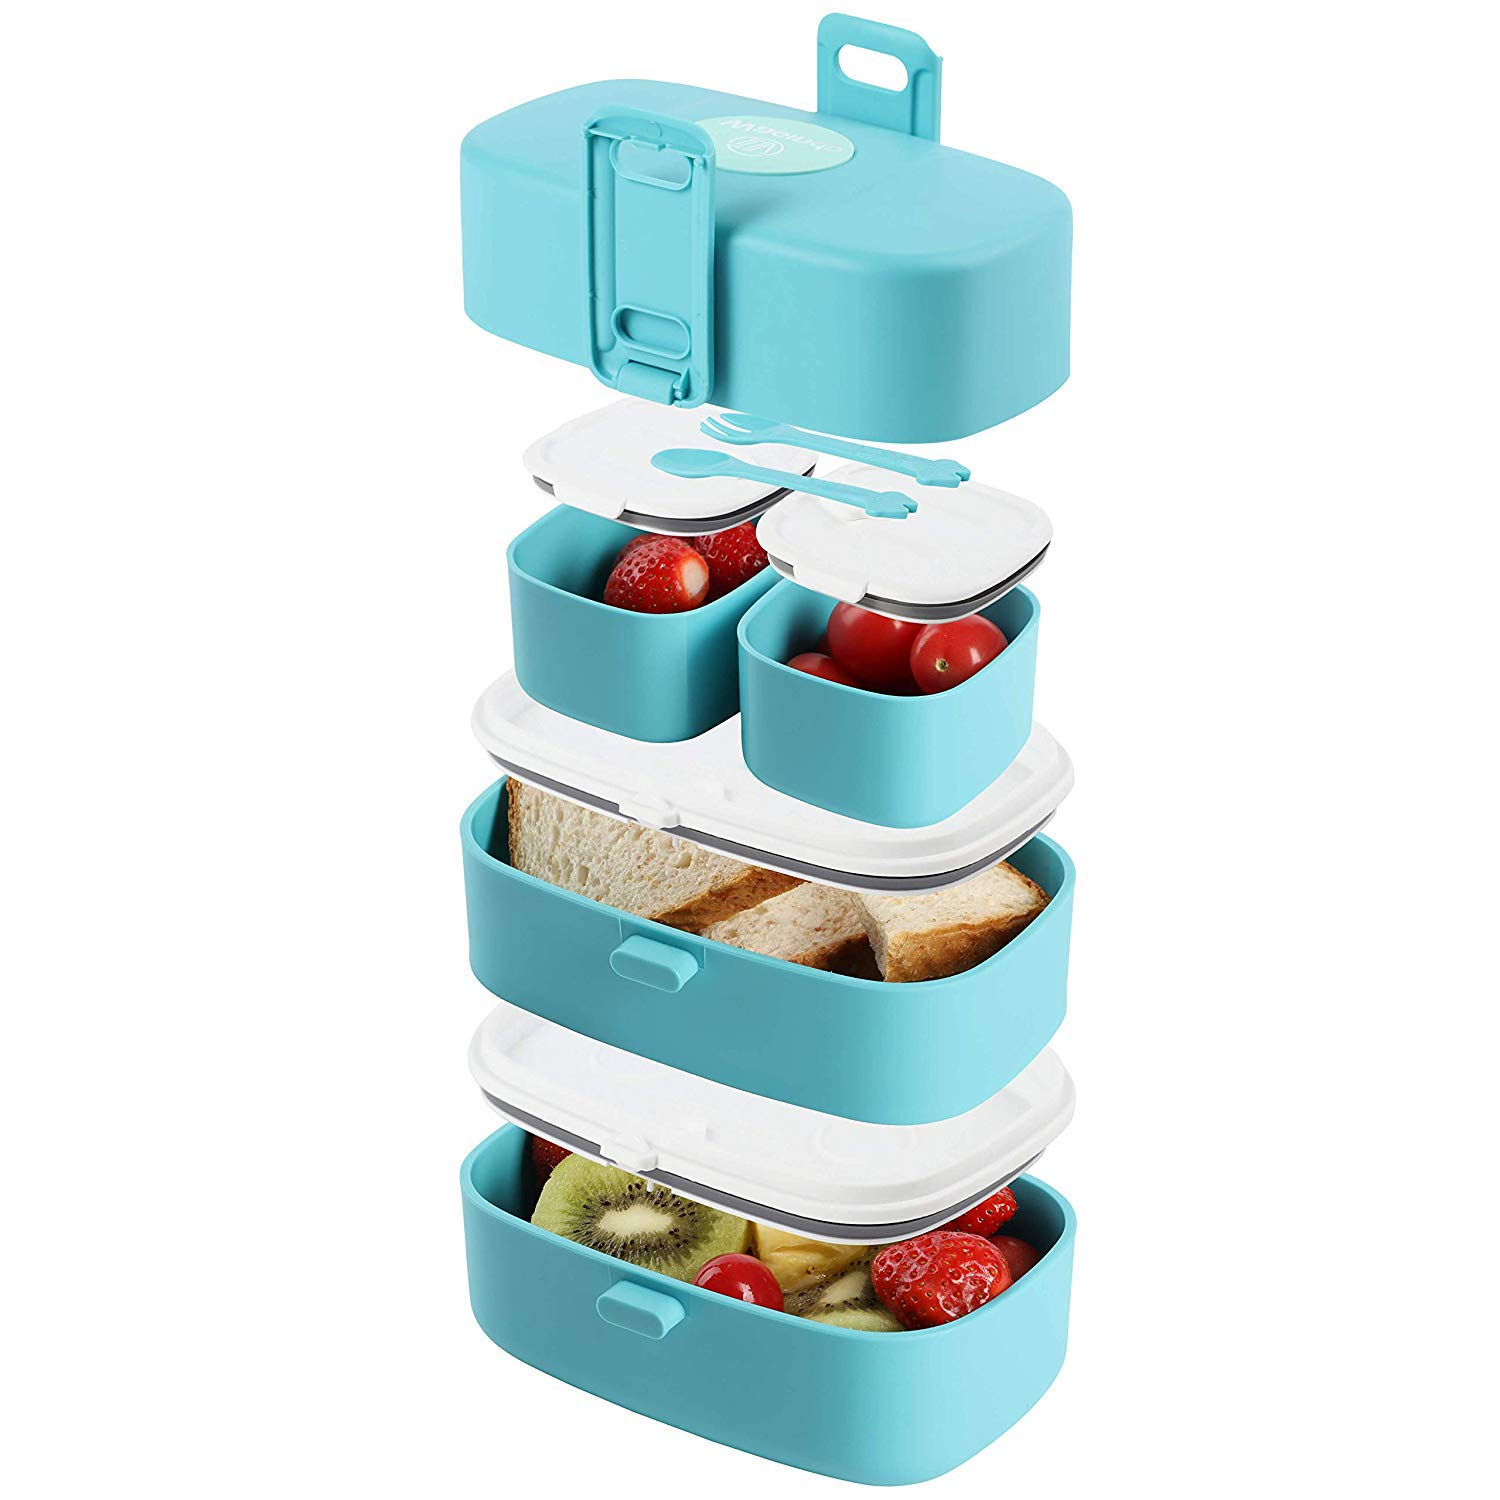 Leak-Proof, BPA-Free Stacking Bento Box Lunch Box with 4 Microwave-Safe, Sealed Compartments for Kids and Adults by Wagindd by Wagindd